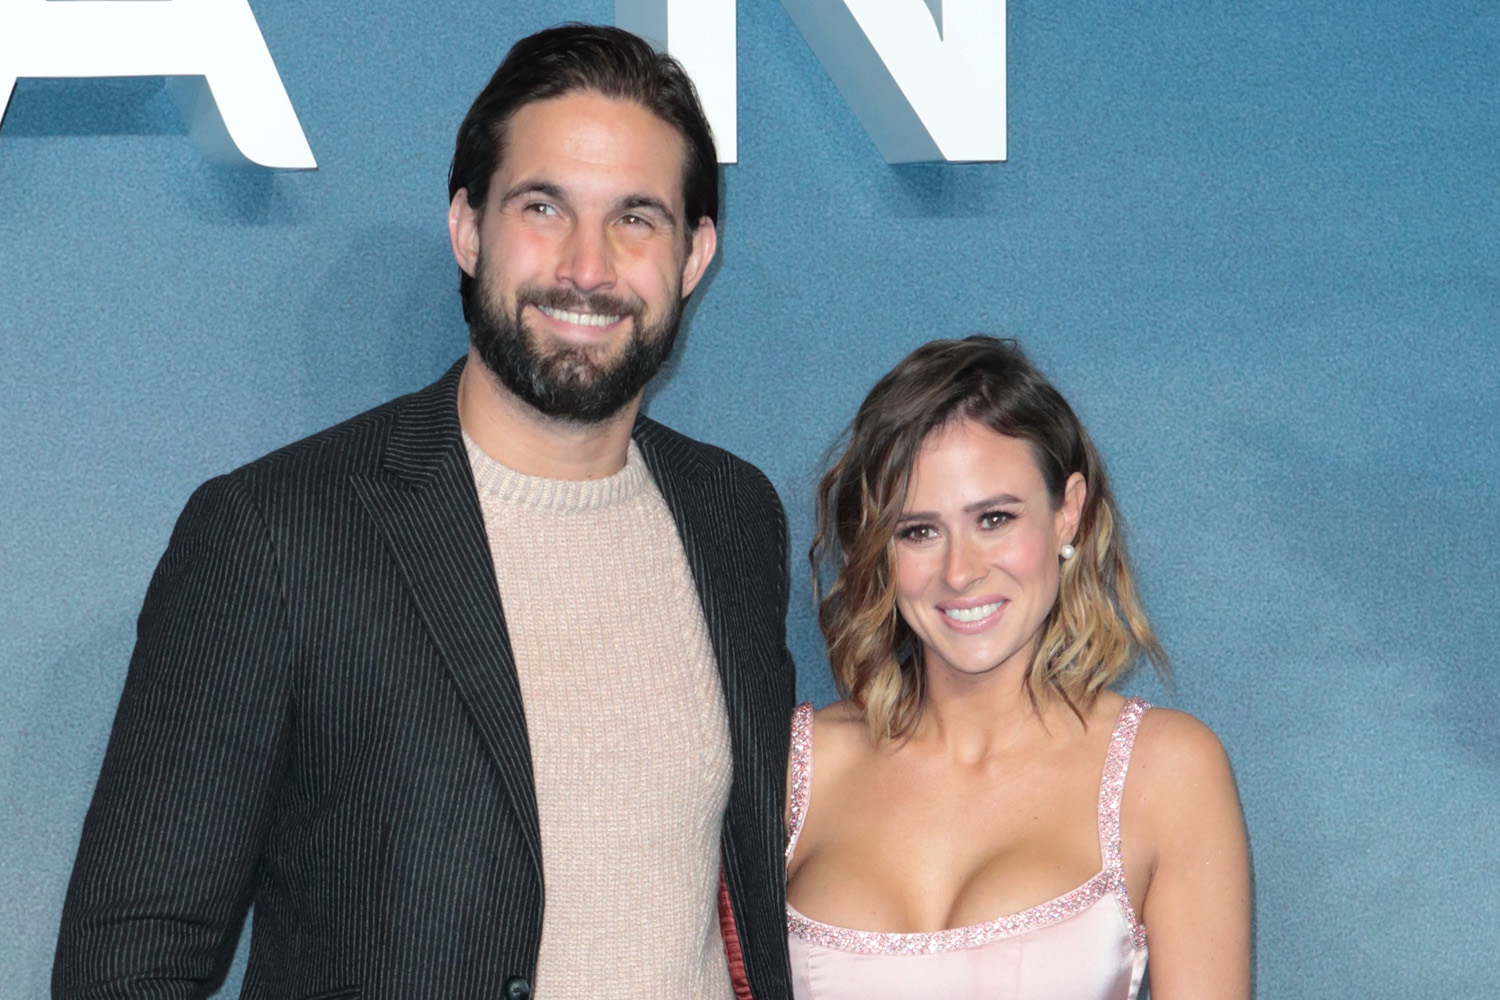 Love Island's Jamie Jewitt and Camilla Thurlow announce they're expecting first child